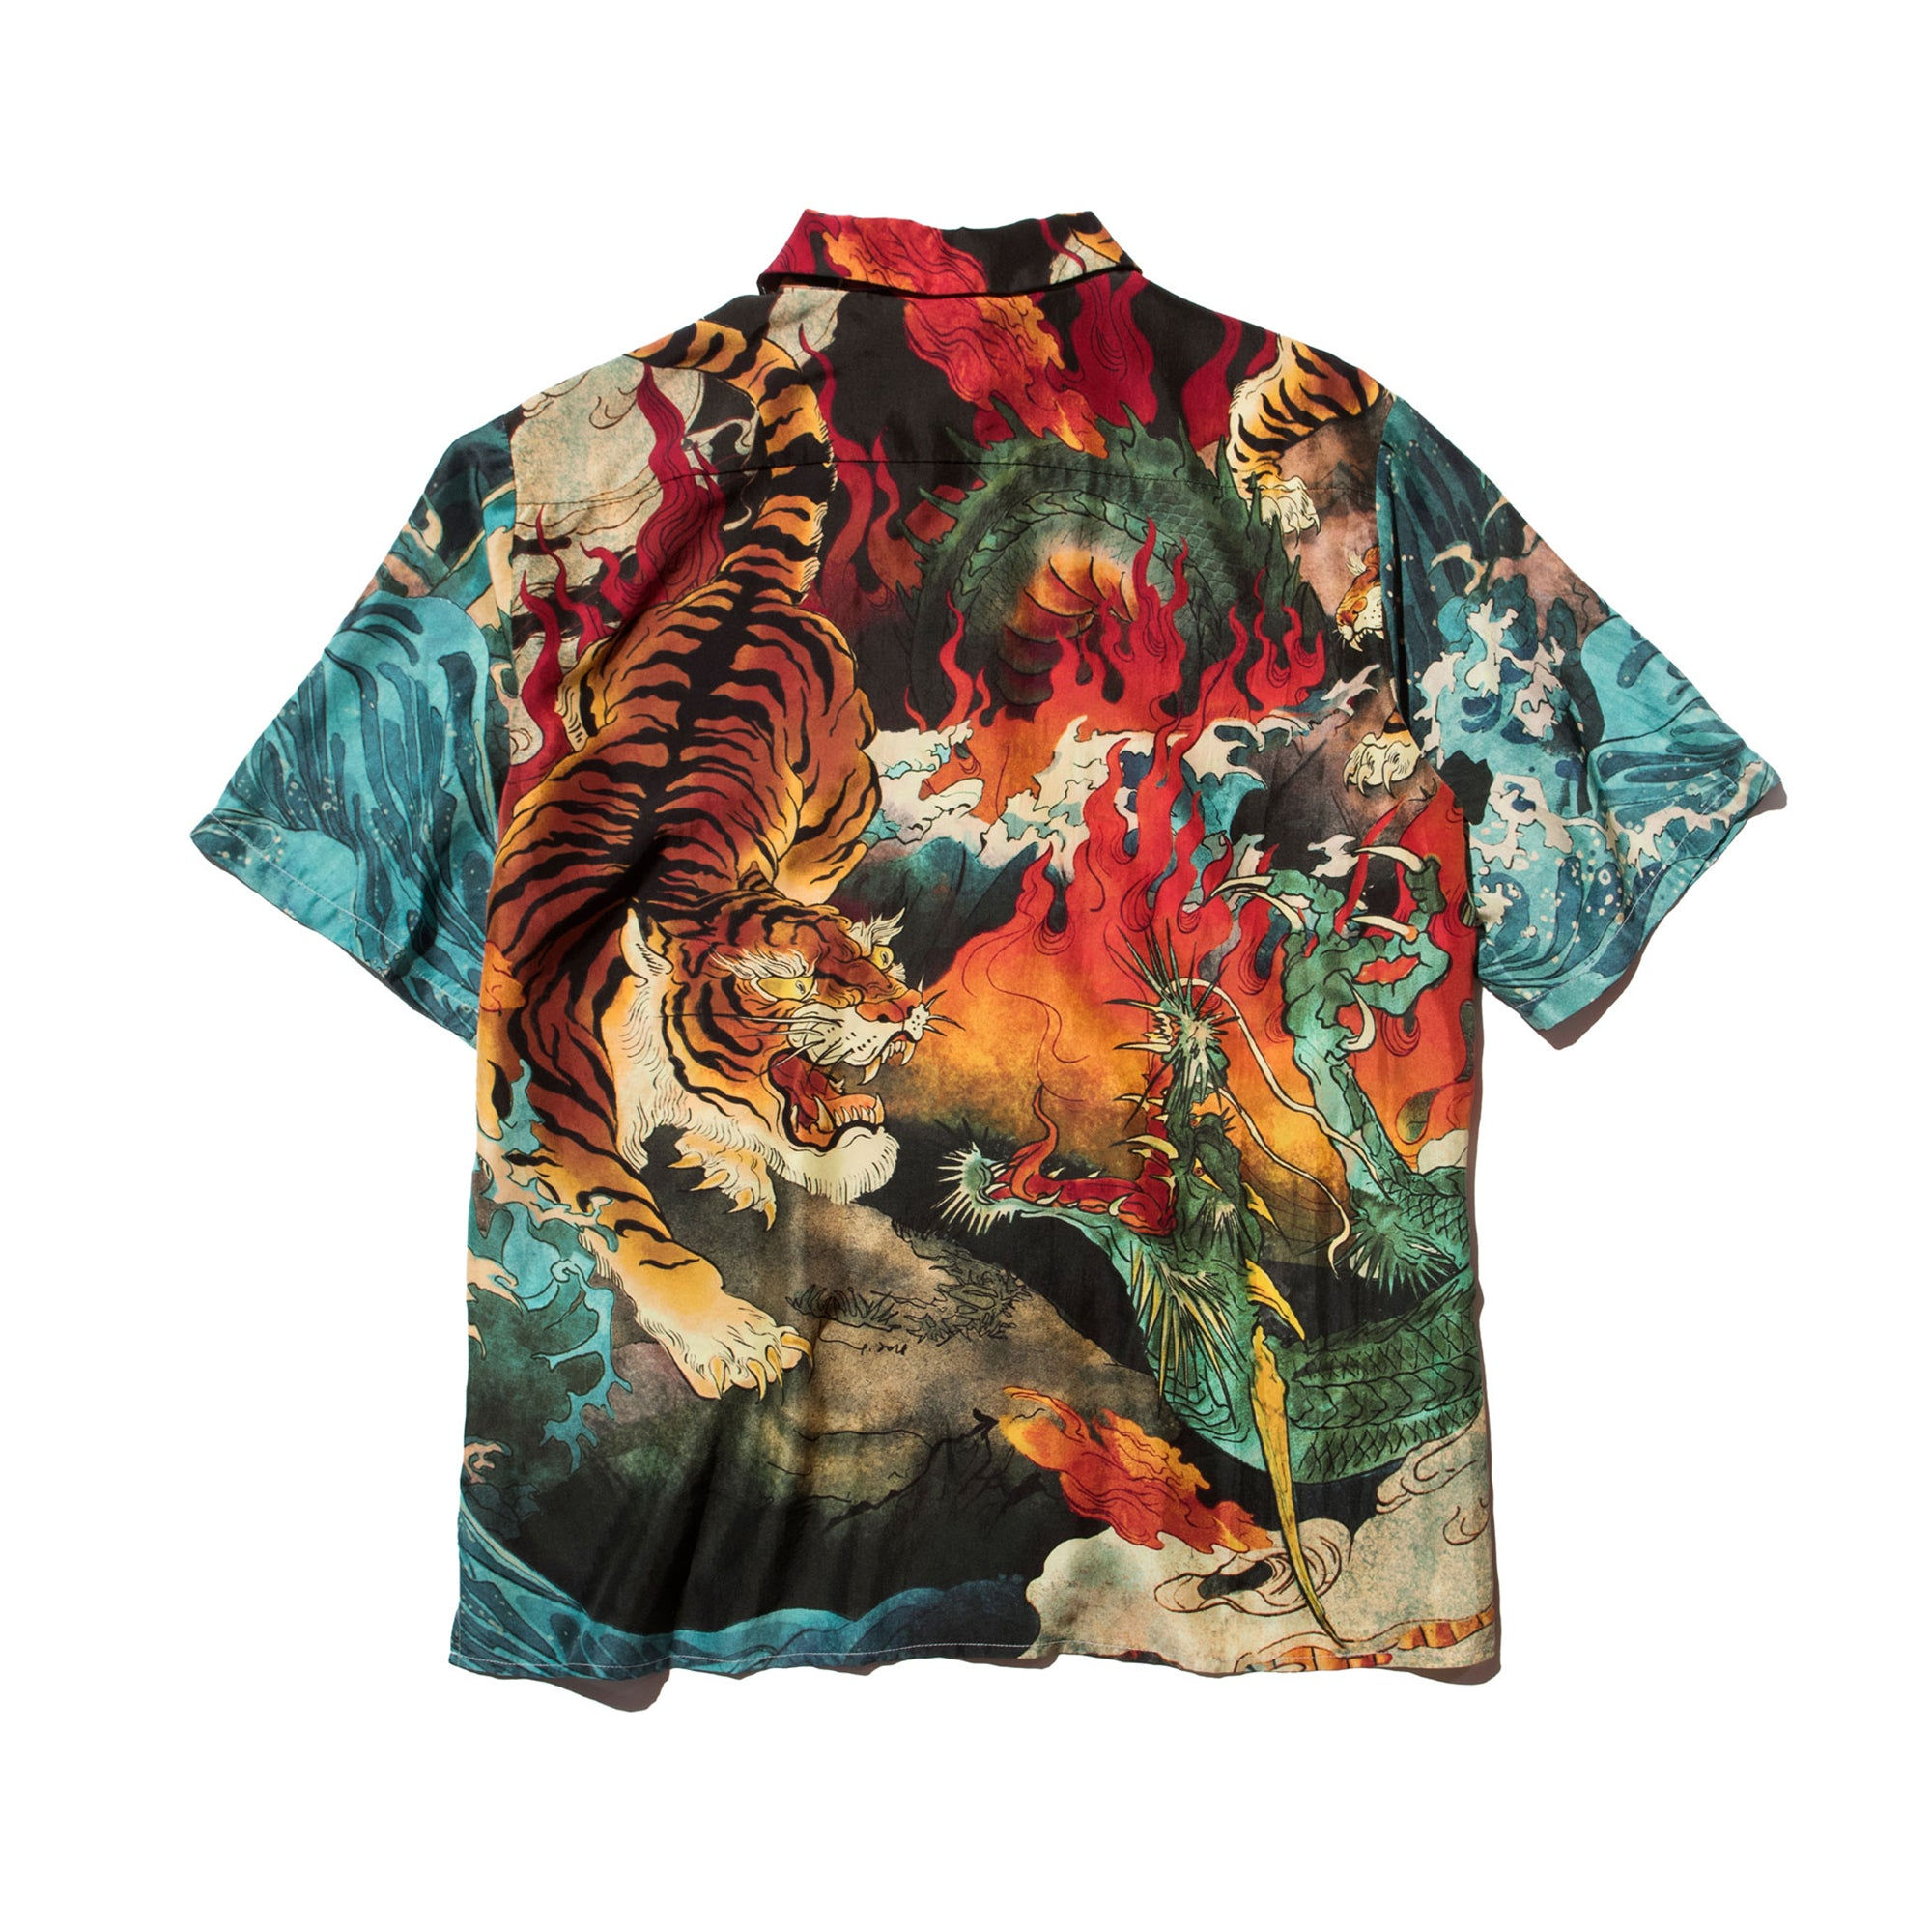 DOWNHILL TIGER & DRAGON PRINT SILK BOWLING SHIRT